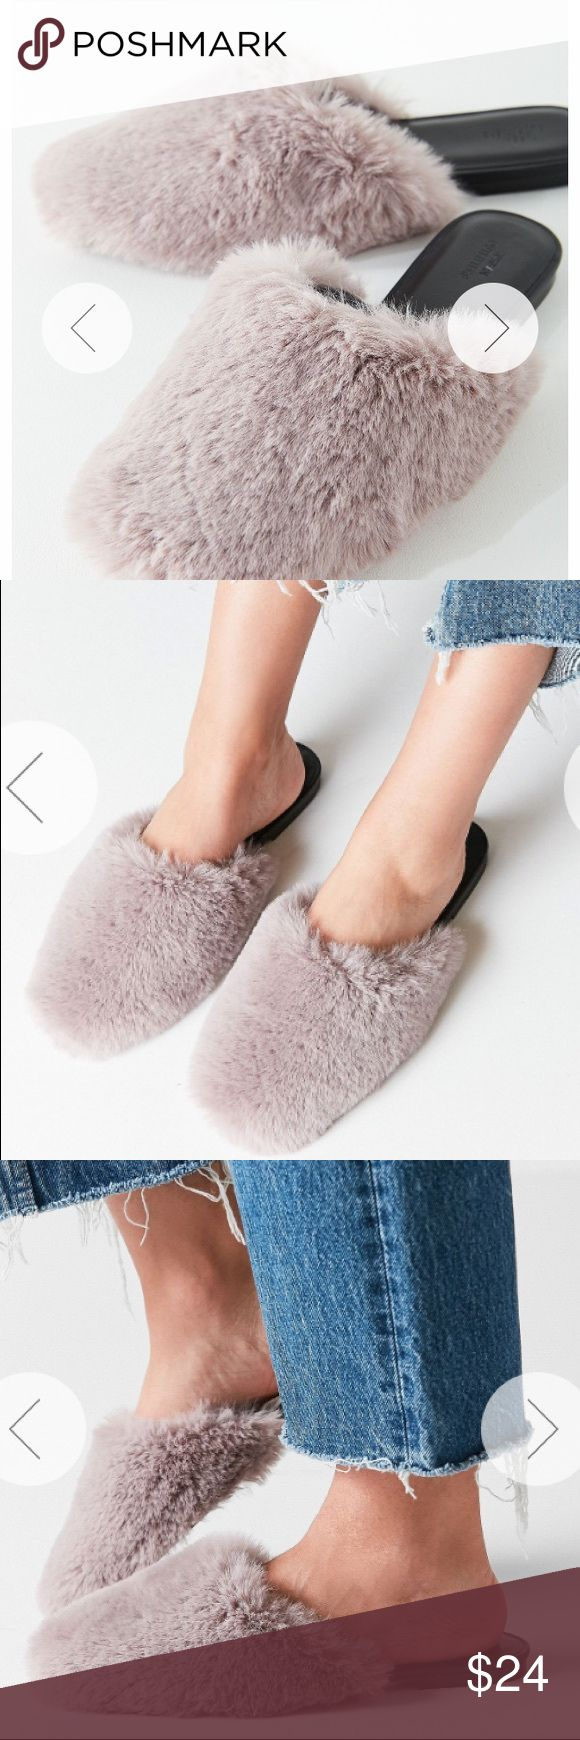 NWT Faux Fur Grey Mule Slides Slip into luxe looks with these seriously glam faux fur mule slides, available exclusively at UO. Featuring a fluffy, faux fur upper with a rounded toe and flat rubber sole.  Content + Care - Polyester, rubber - Spot clean - Imported Urban Outfitters Shoes Mules & Clogs